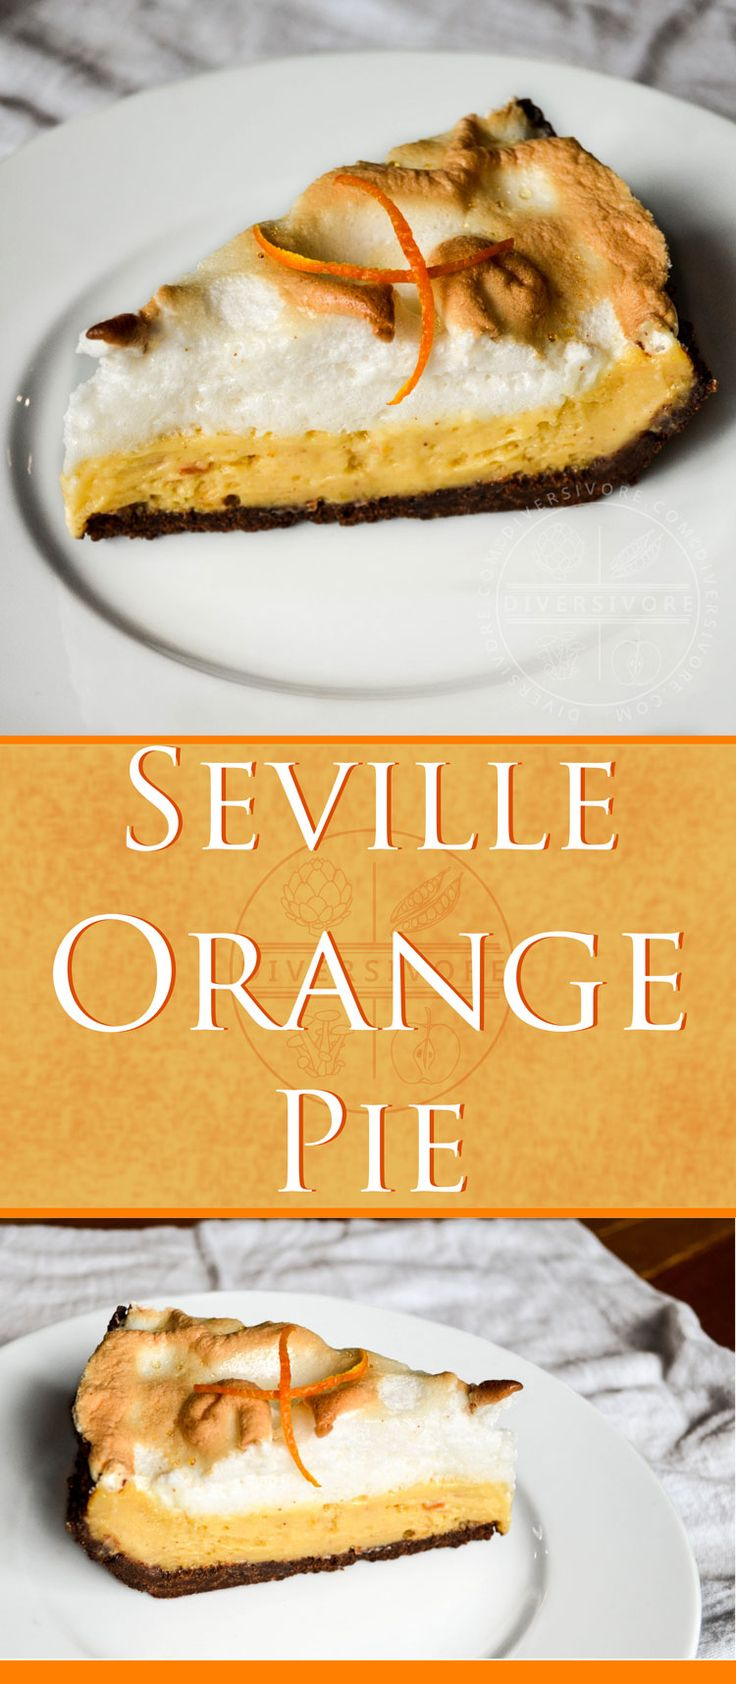 Seville orange (aka sour, bigarade, or marmalade orange) and lemon pie with a meringue and chocolate graham cracker crust.  Seriously delicious dessert decadence, for the true orange afficianado.